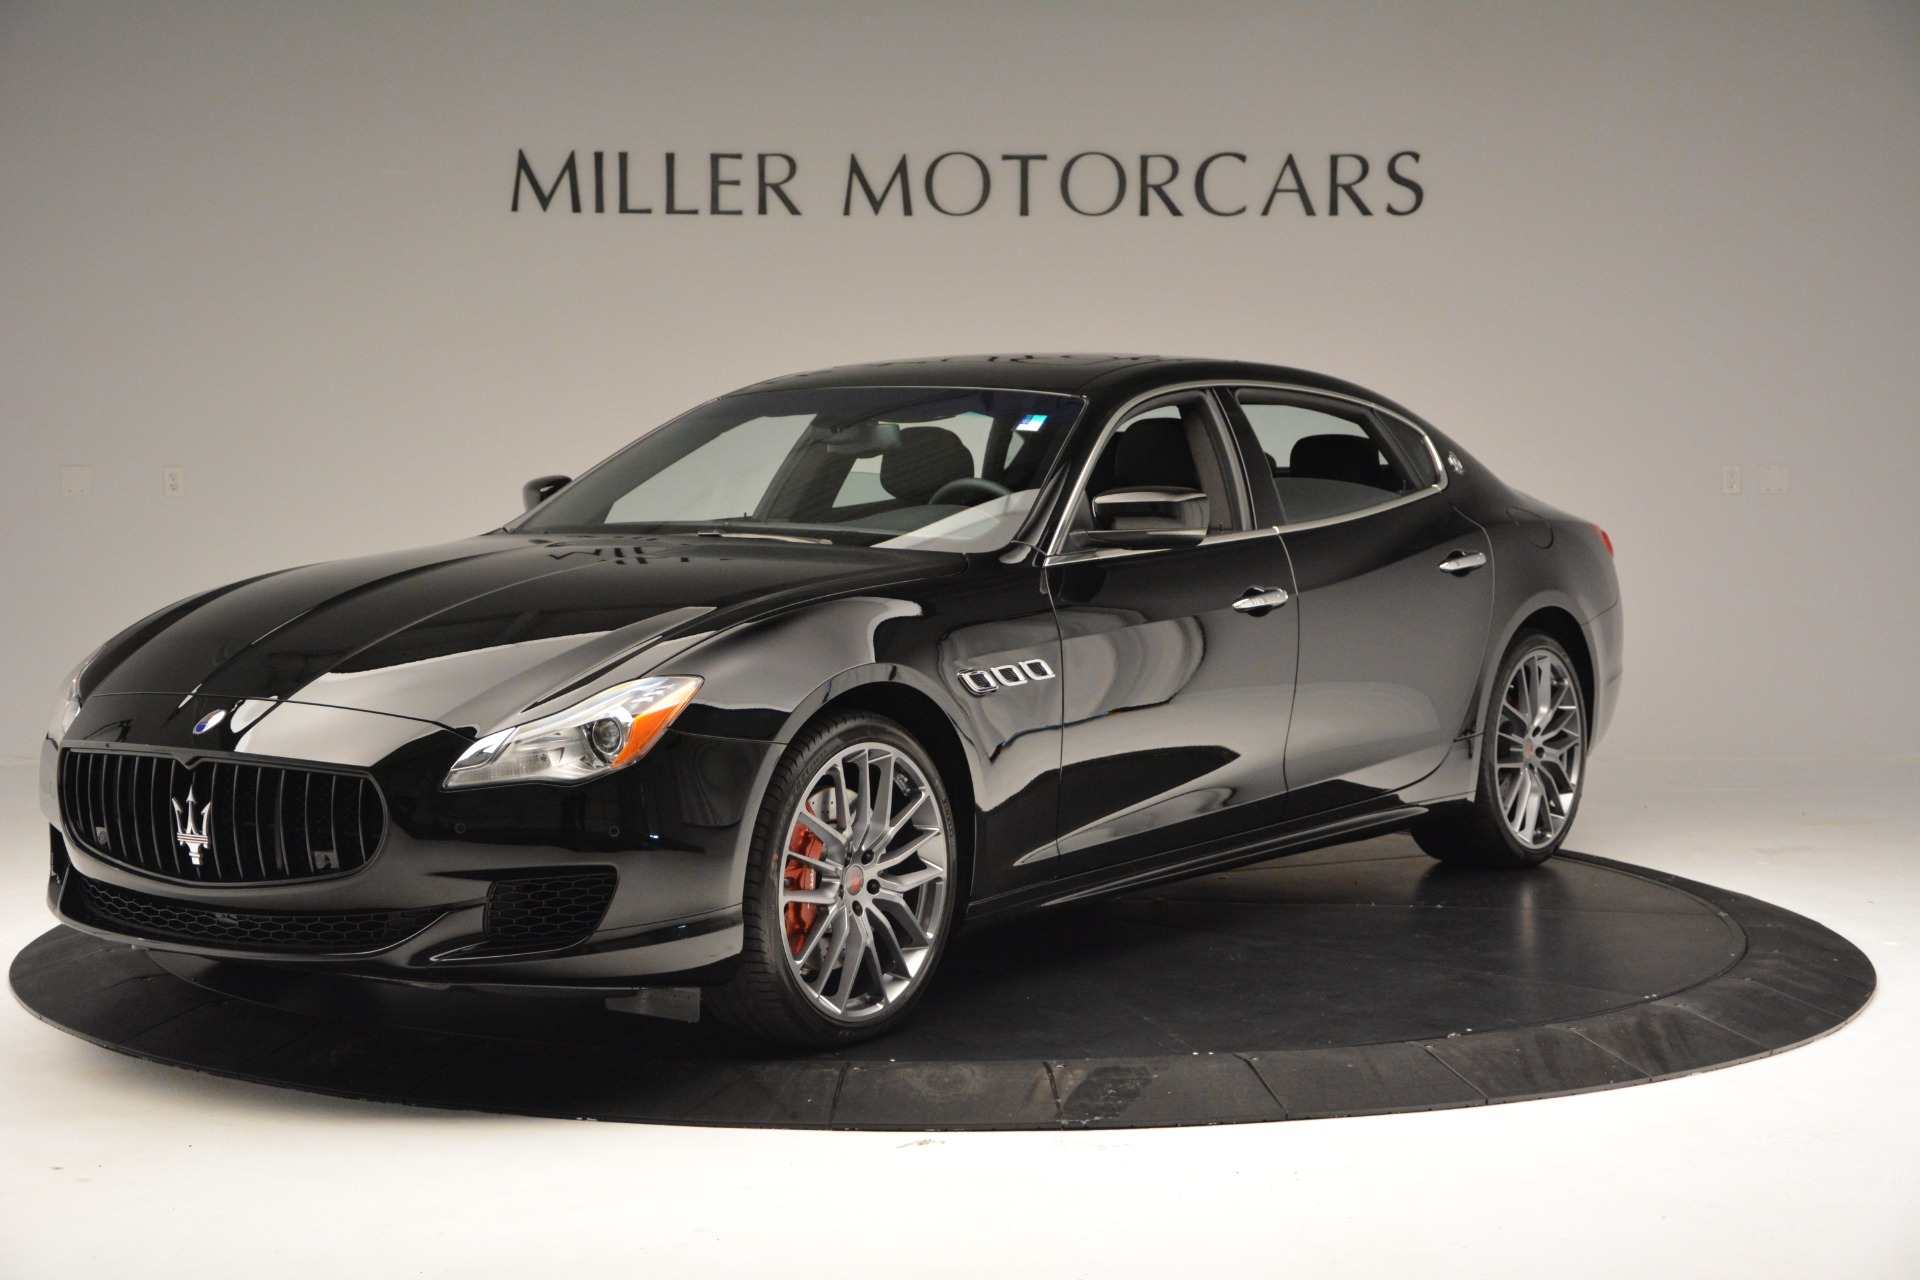 Used 2015 Maserati Quattroporte GTS For Sale In Westport, CT 2993_p2